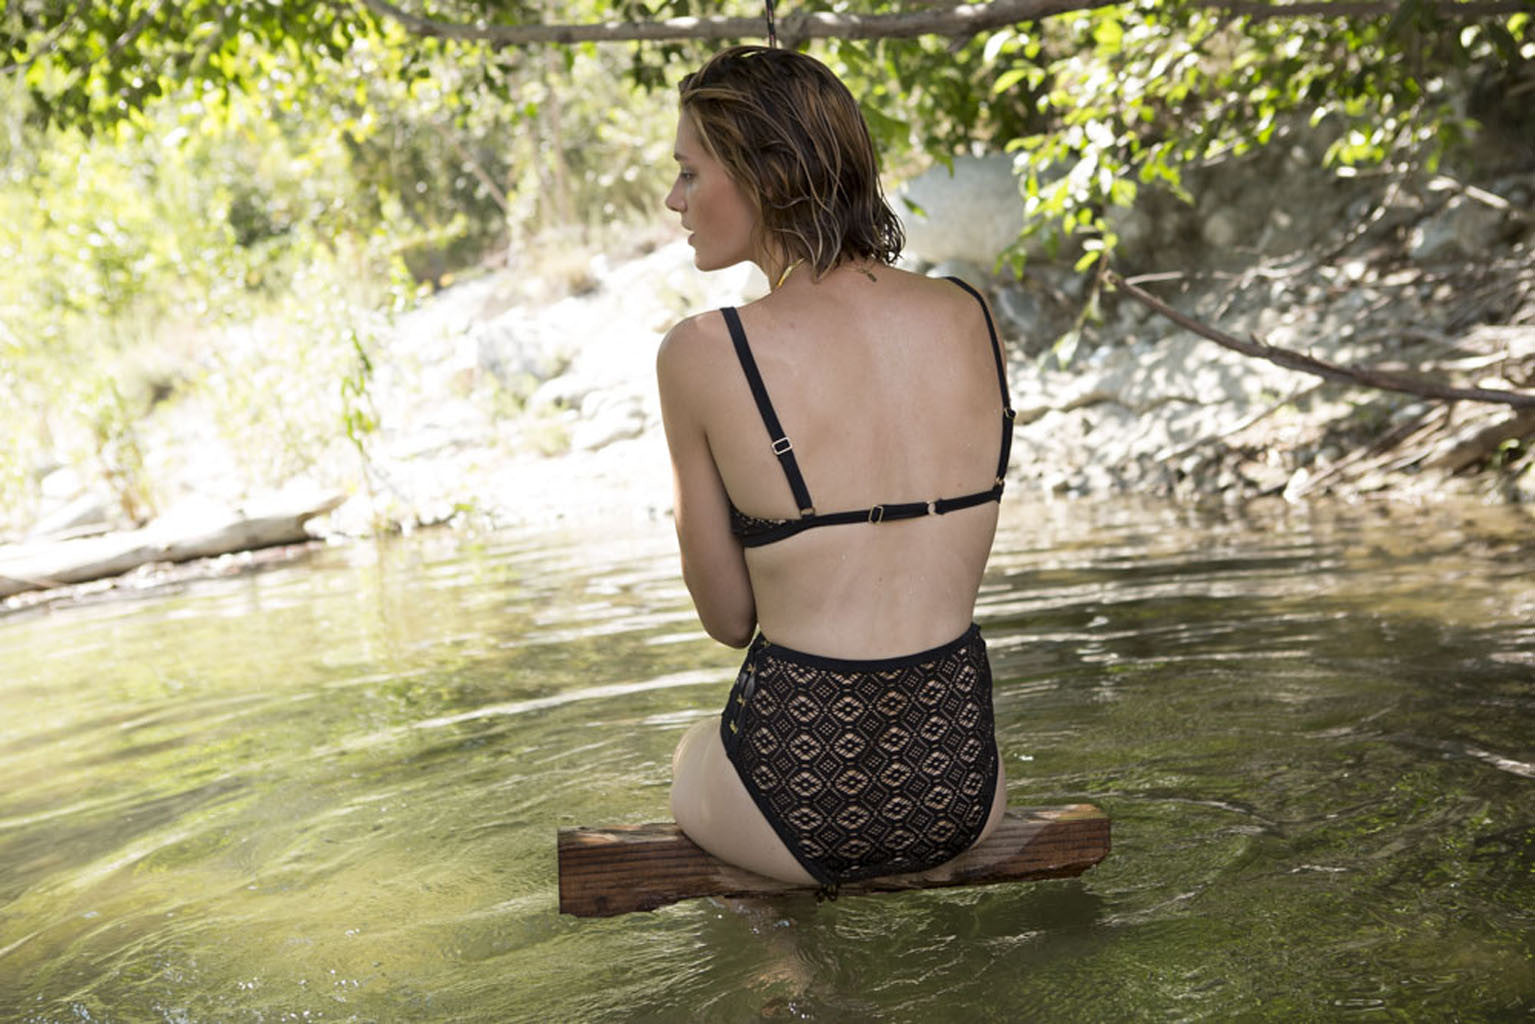 Somedays Lovin Lighthouse Black Lace Bikini Bottoms - SWIMWEAR - SOMEDAYS LOVIN - Free Vibrationz - 10